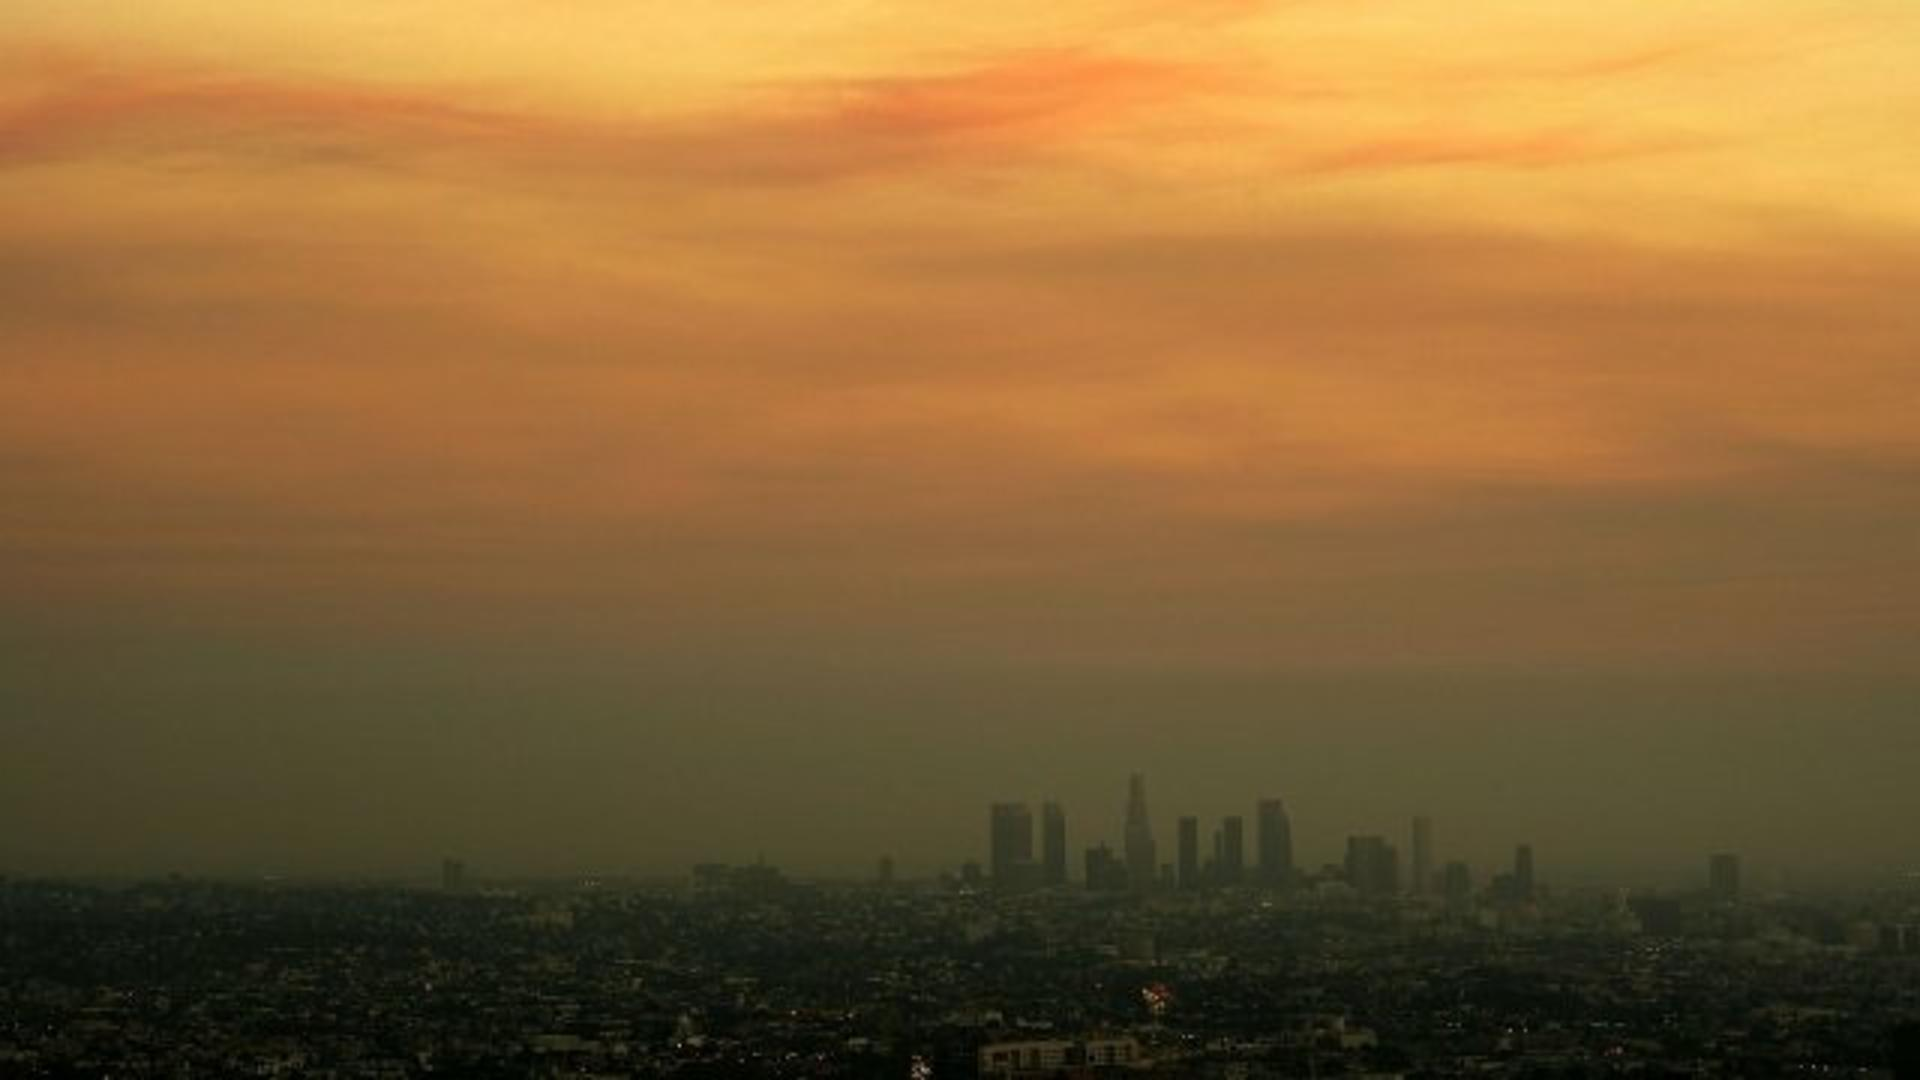 After Decades Of Global Action, The Ozone Layer Is On The Road To Recovery